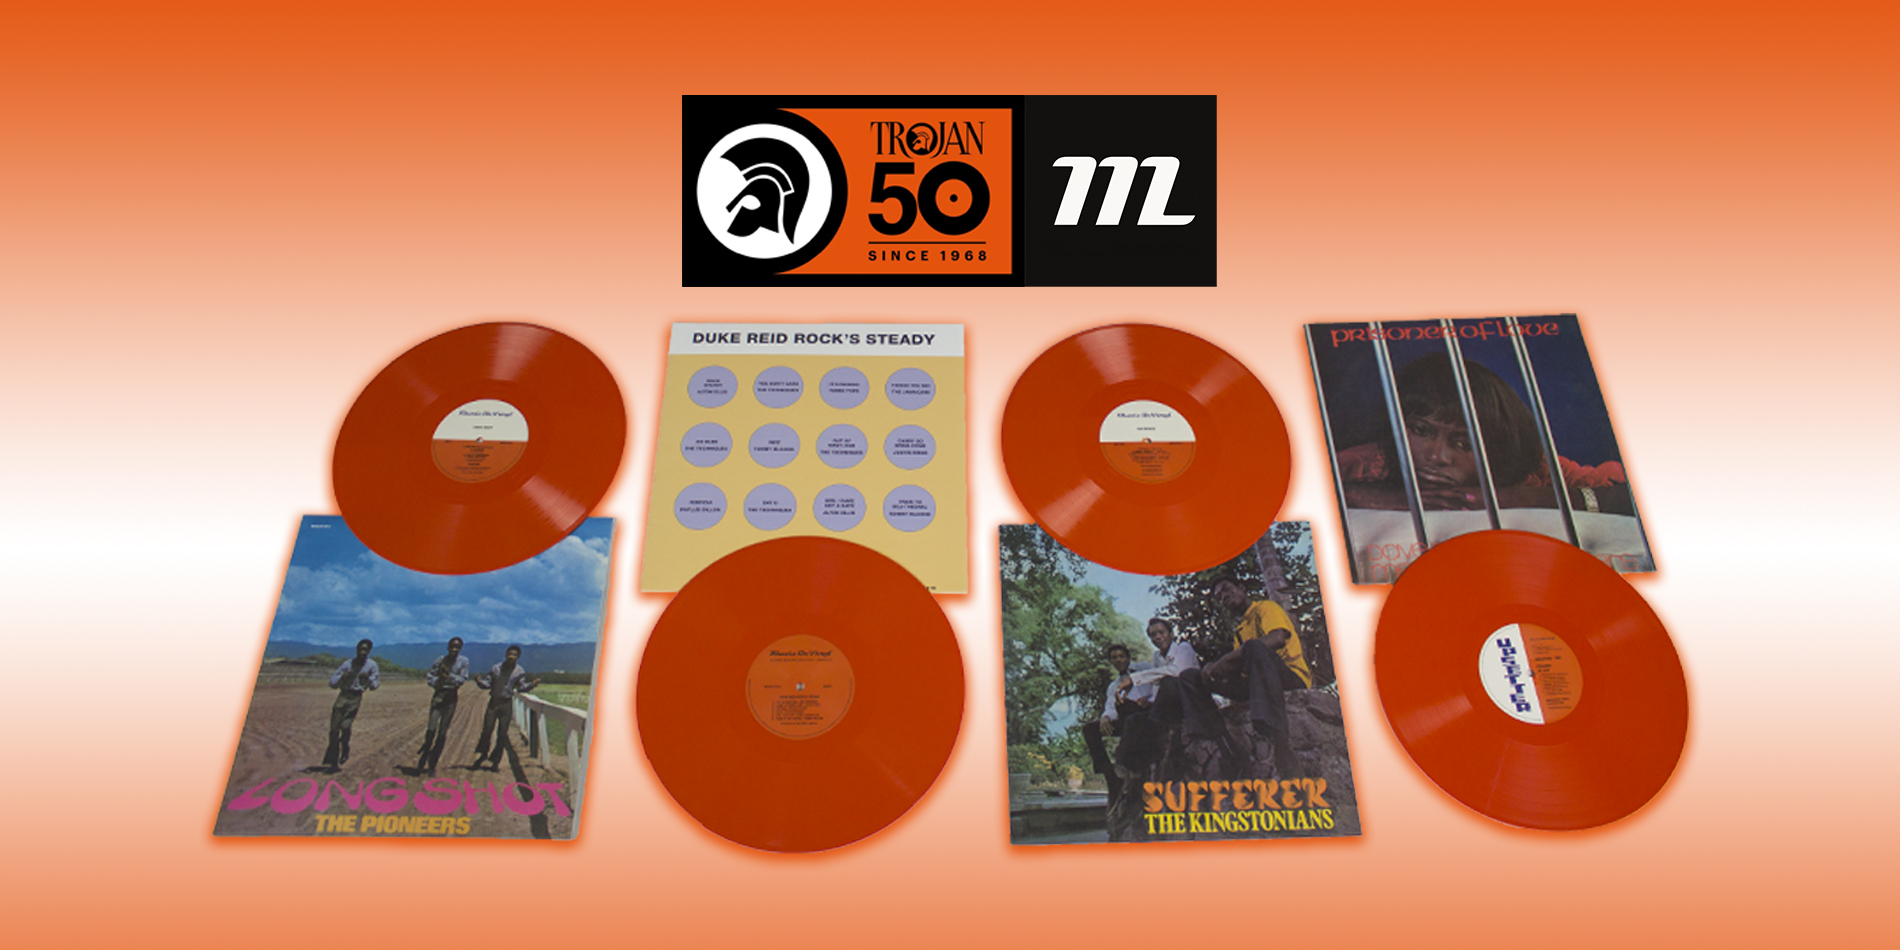 Music On Vinyl celebrates Trojan's 50th anniversary